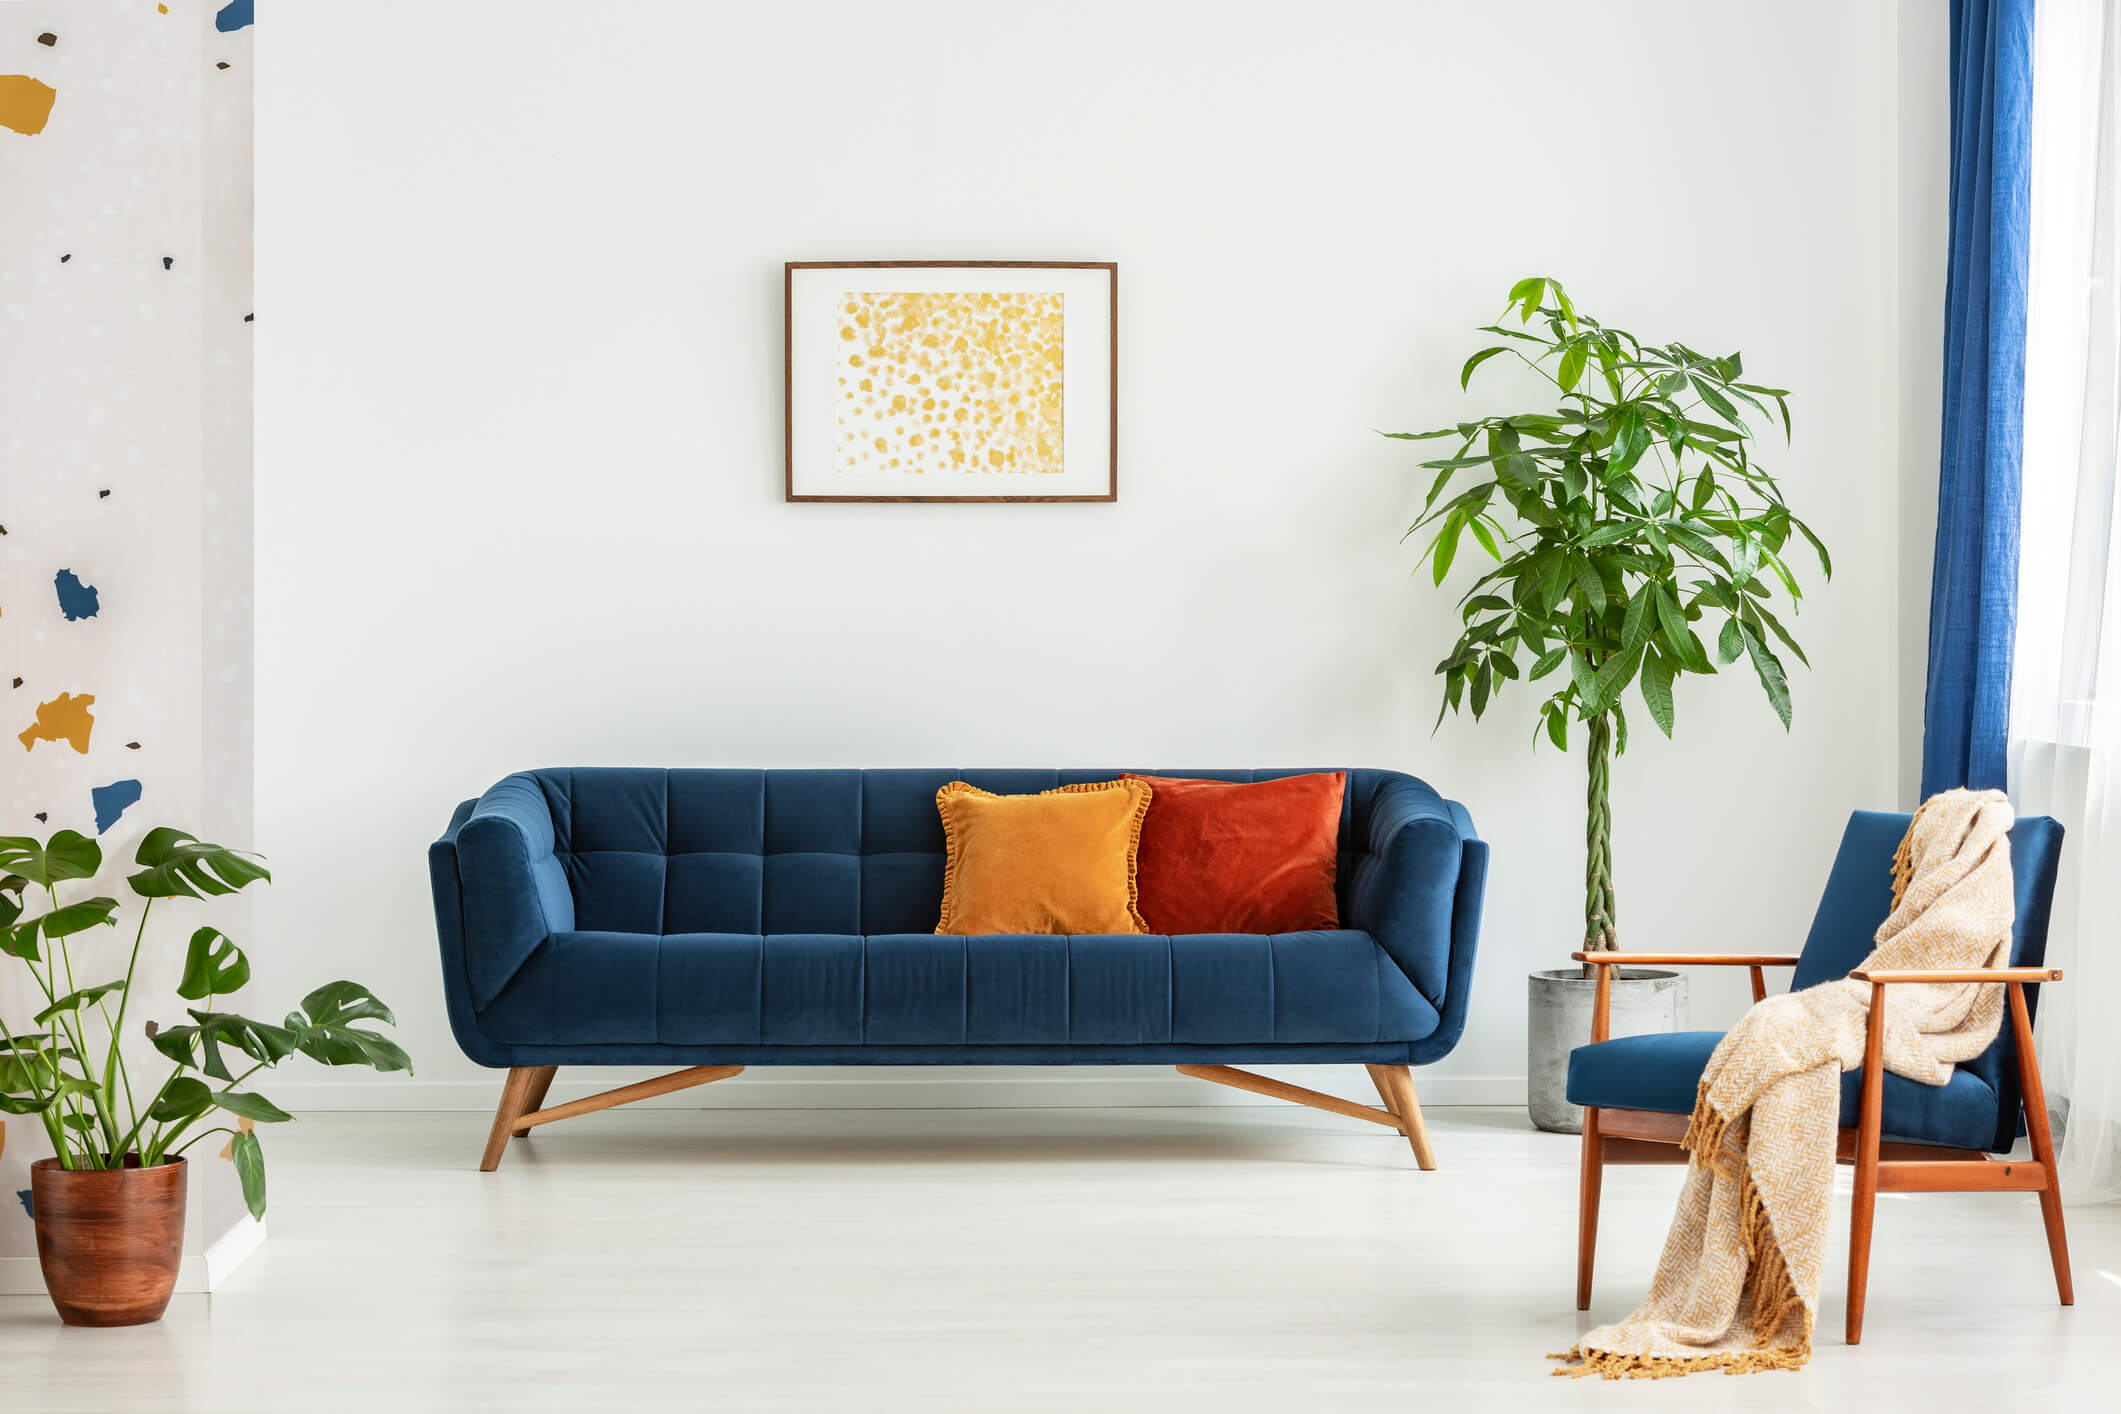 Blue and orange living room in a home